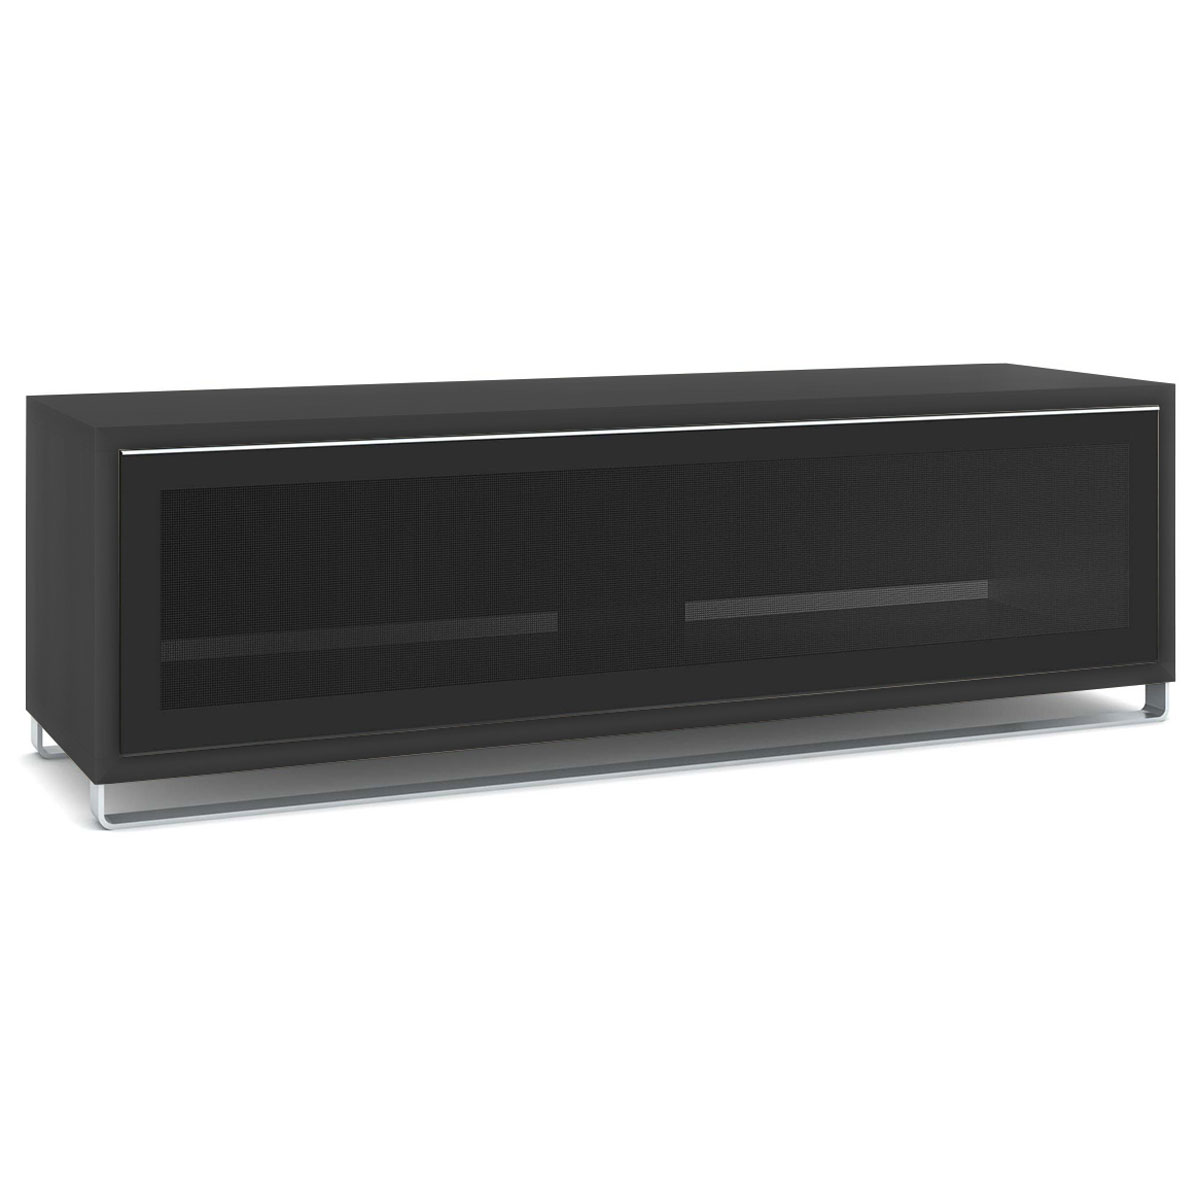 de conti ampio noir meuble tv de conti sur. Black Bedroom Furniture Sets. Home Design Ideas